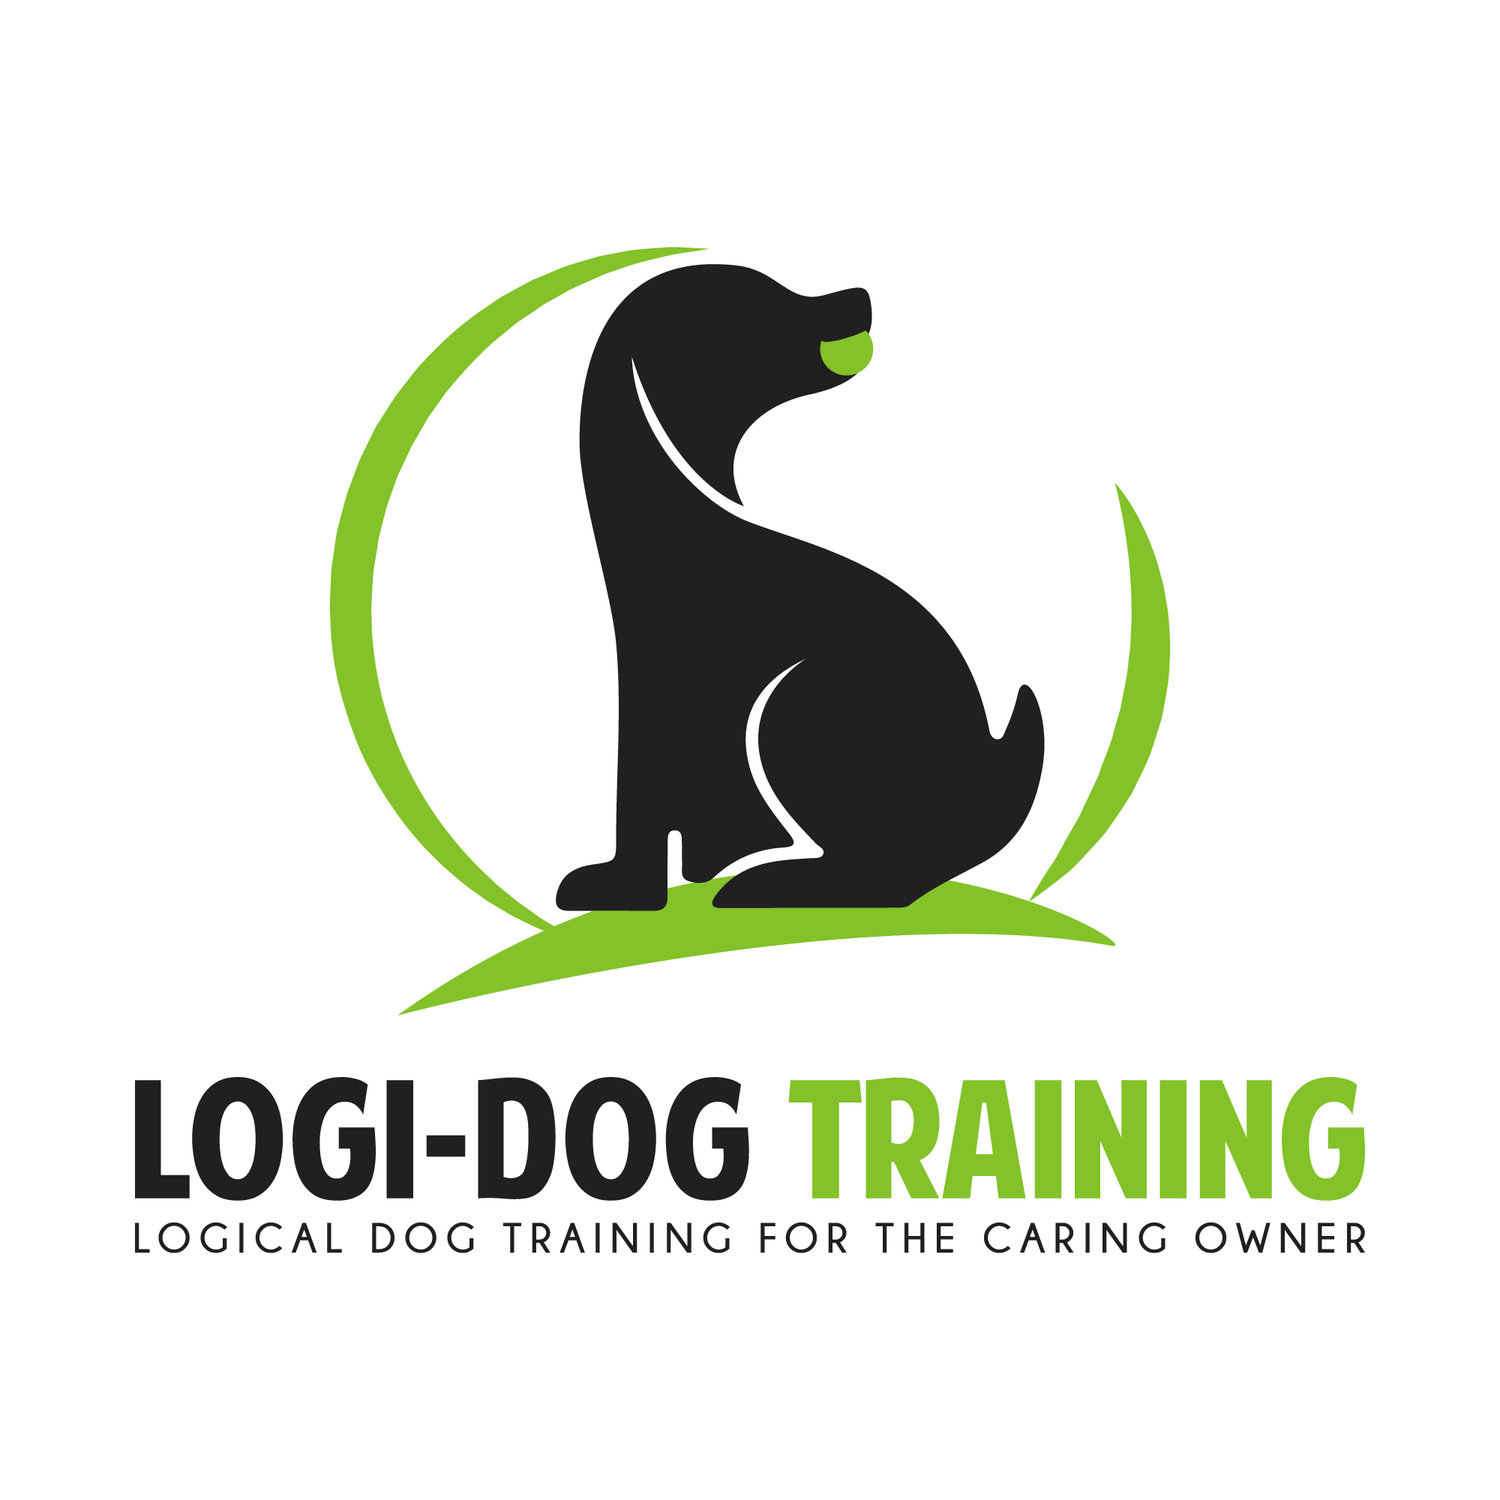 Logi-Dog Training